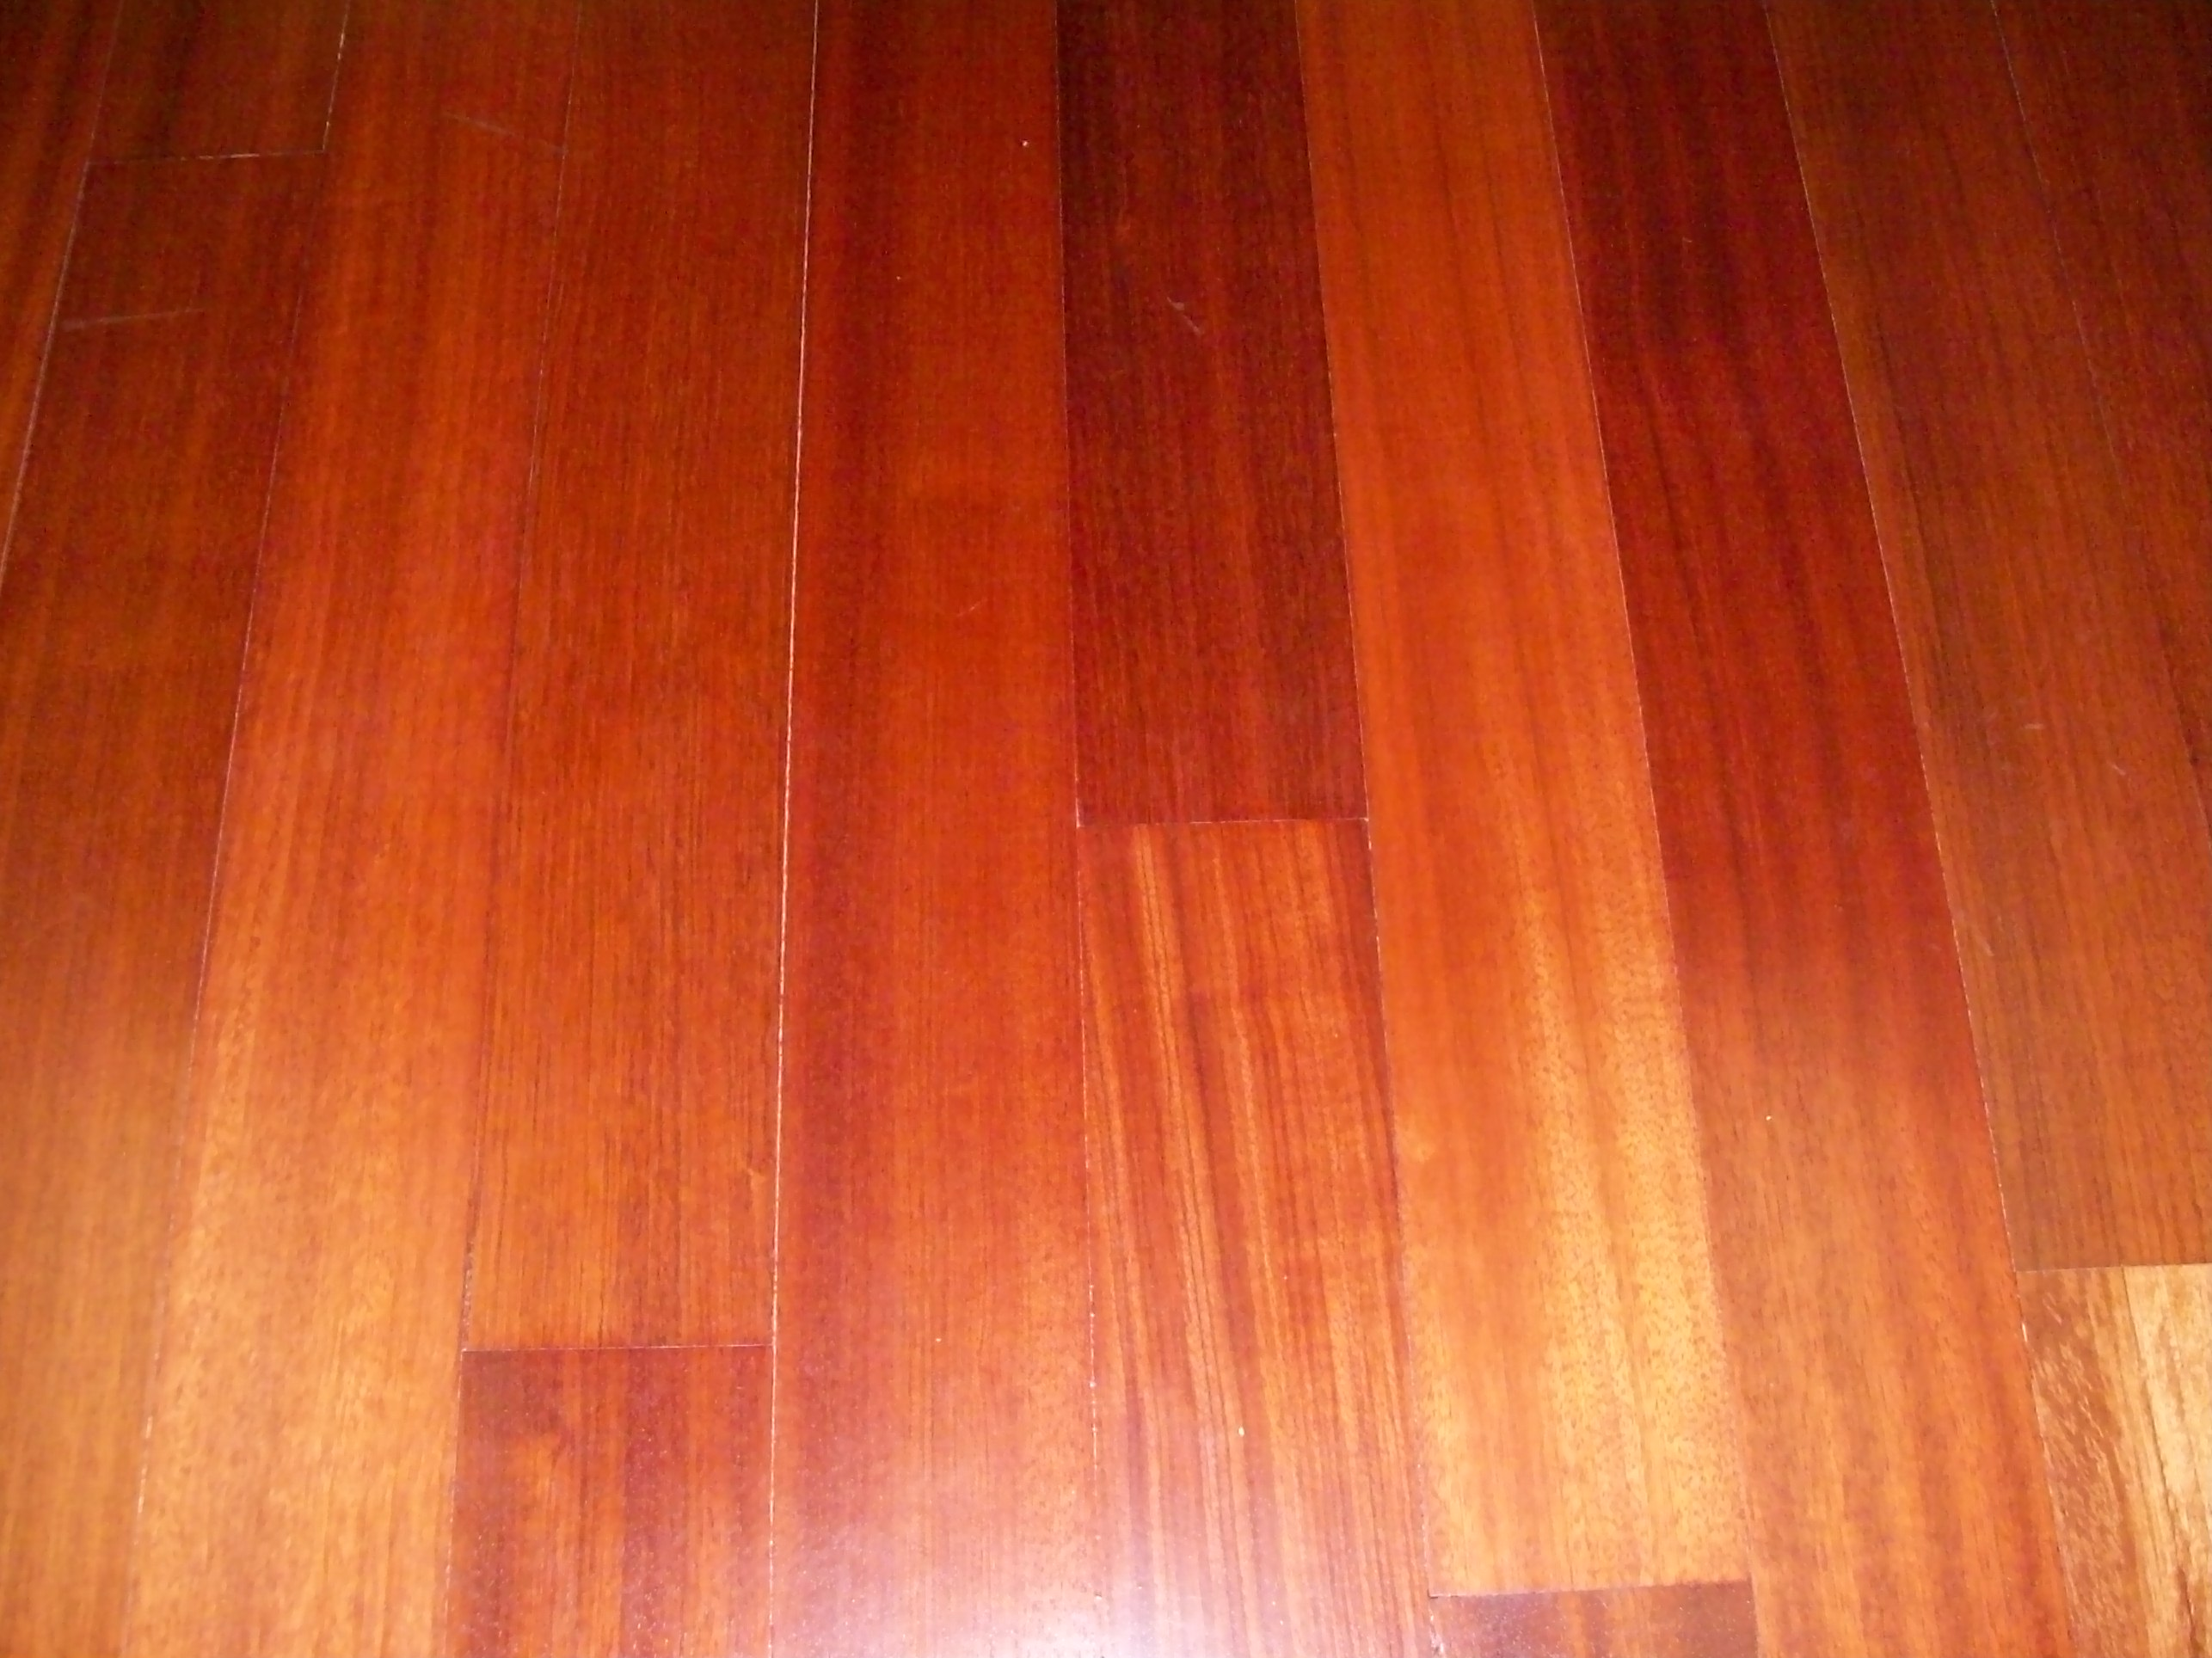 Brazilian cherry hardwood flooring in irvington ny for Brazilian cherry flooring